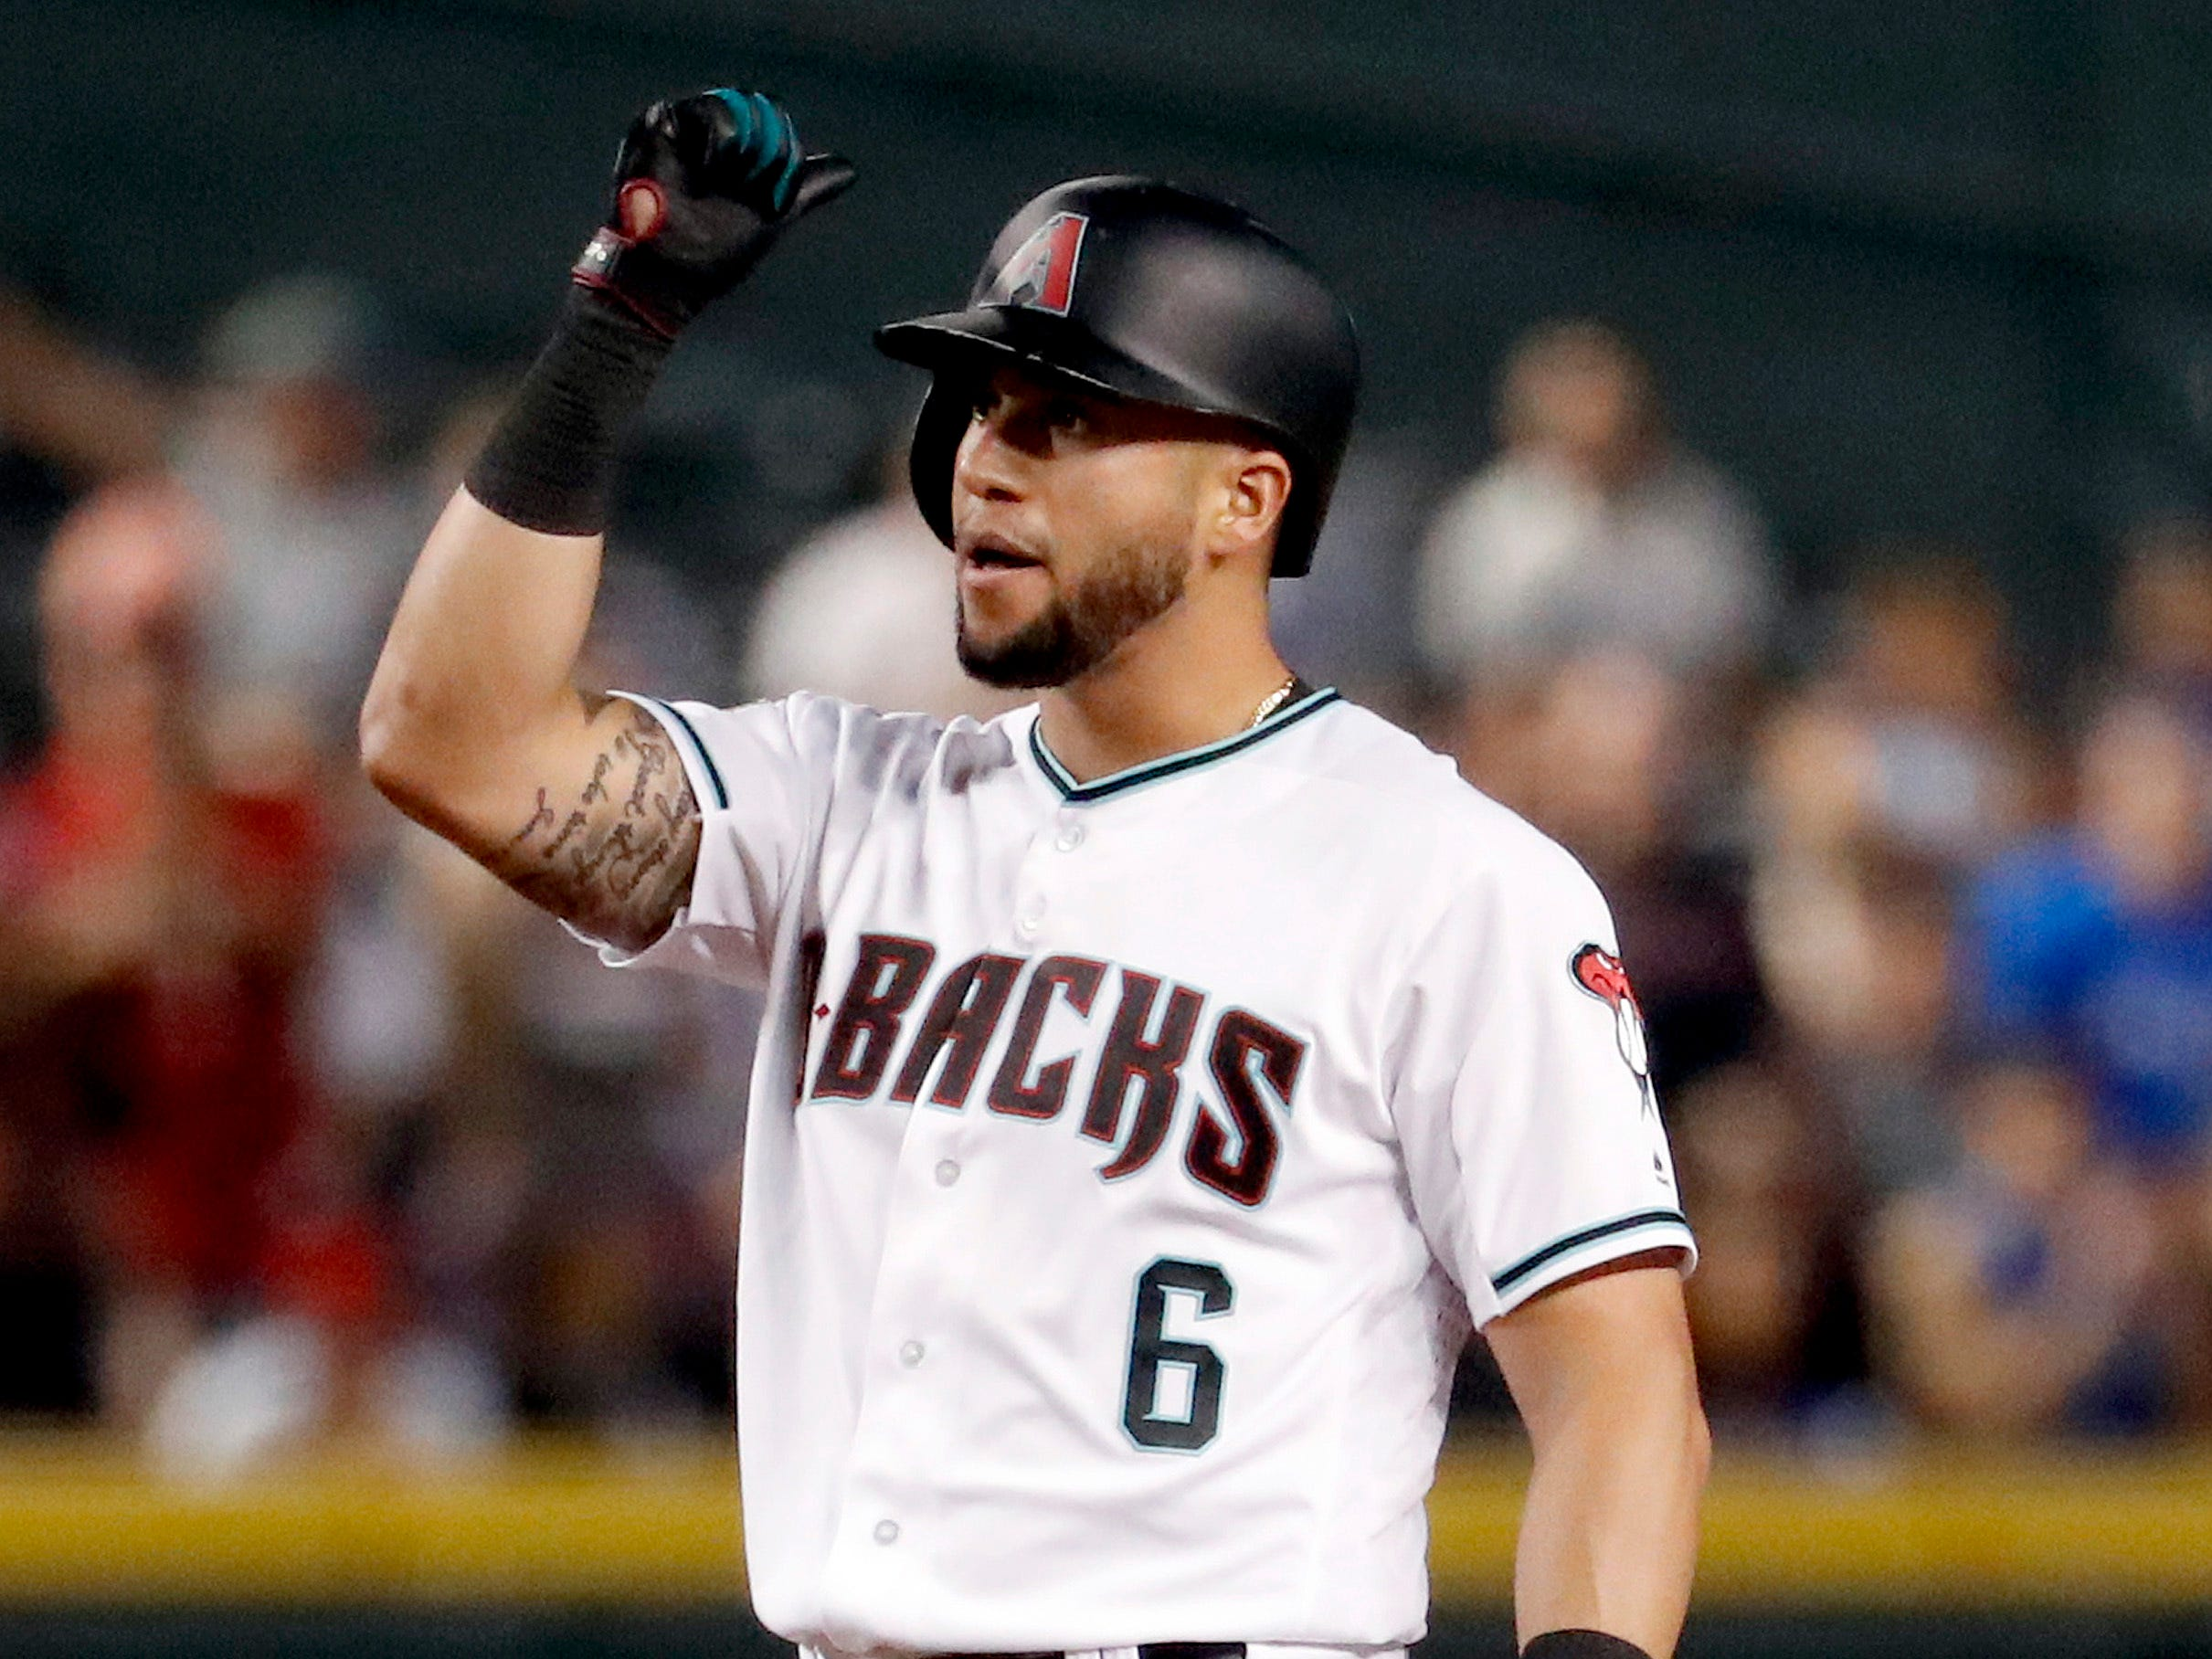 Arizona Diamondbacks' David Peralta (6) celebrates his two-run double against the Los Angeles Dodgers during the sixth inning of a baseball game Tuesday, Sept. 25, 2018, in Phoenix.